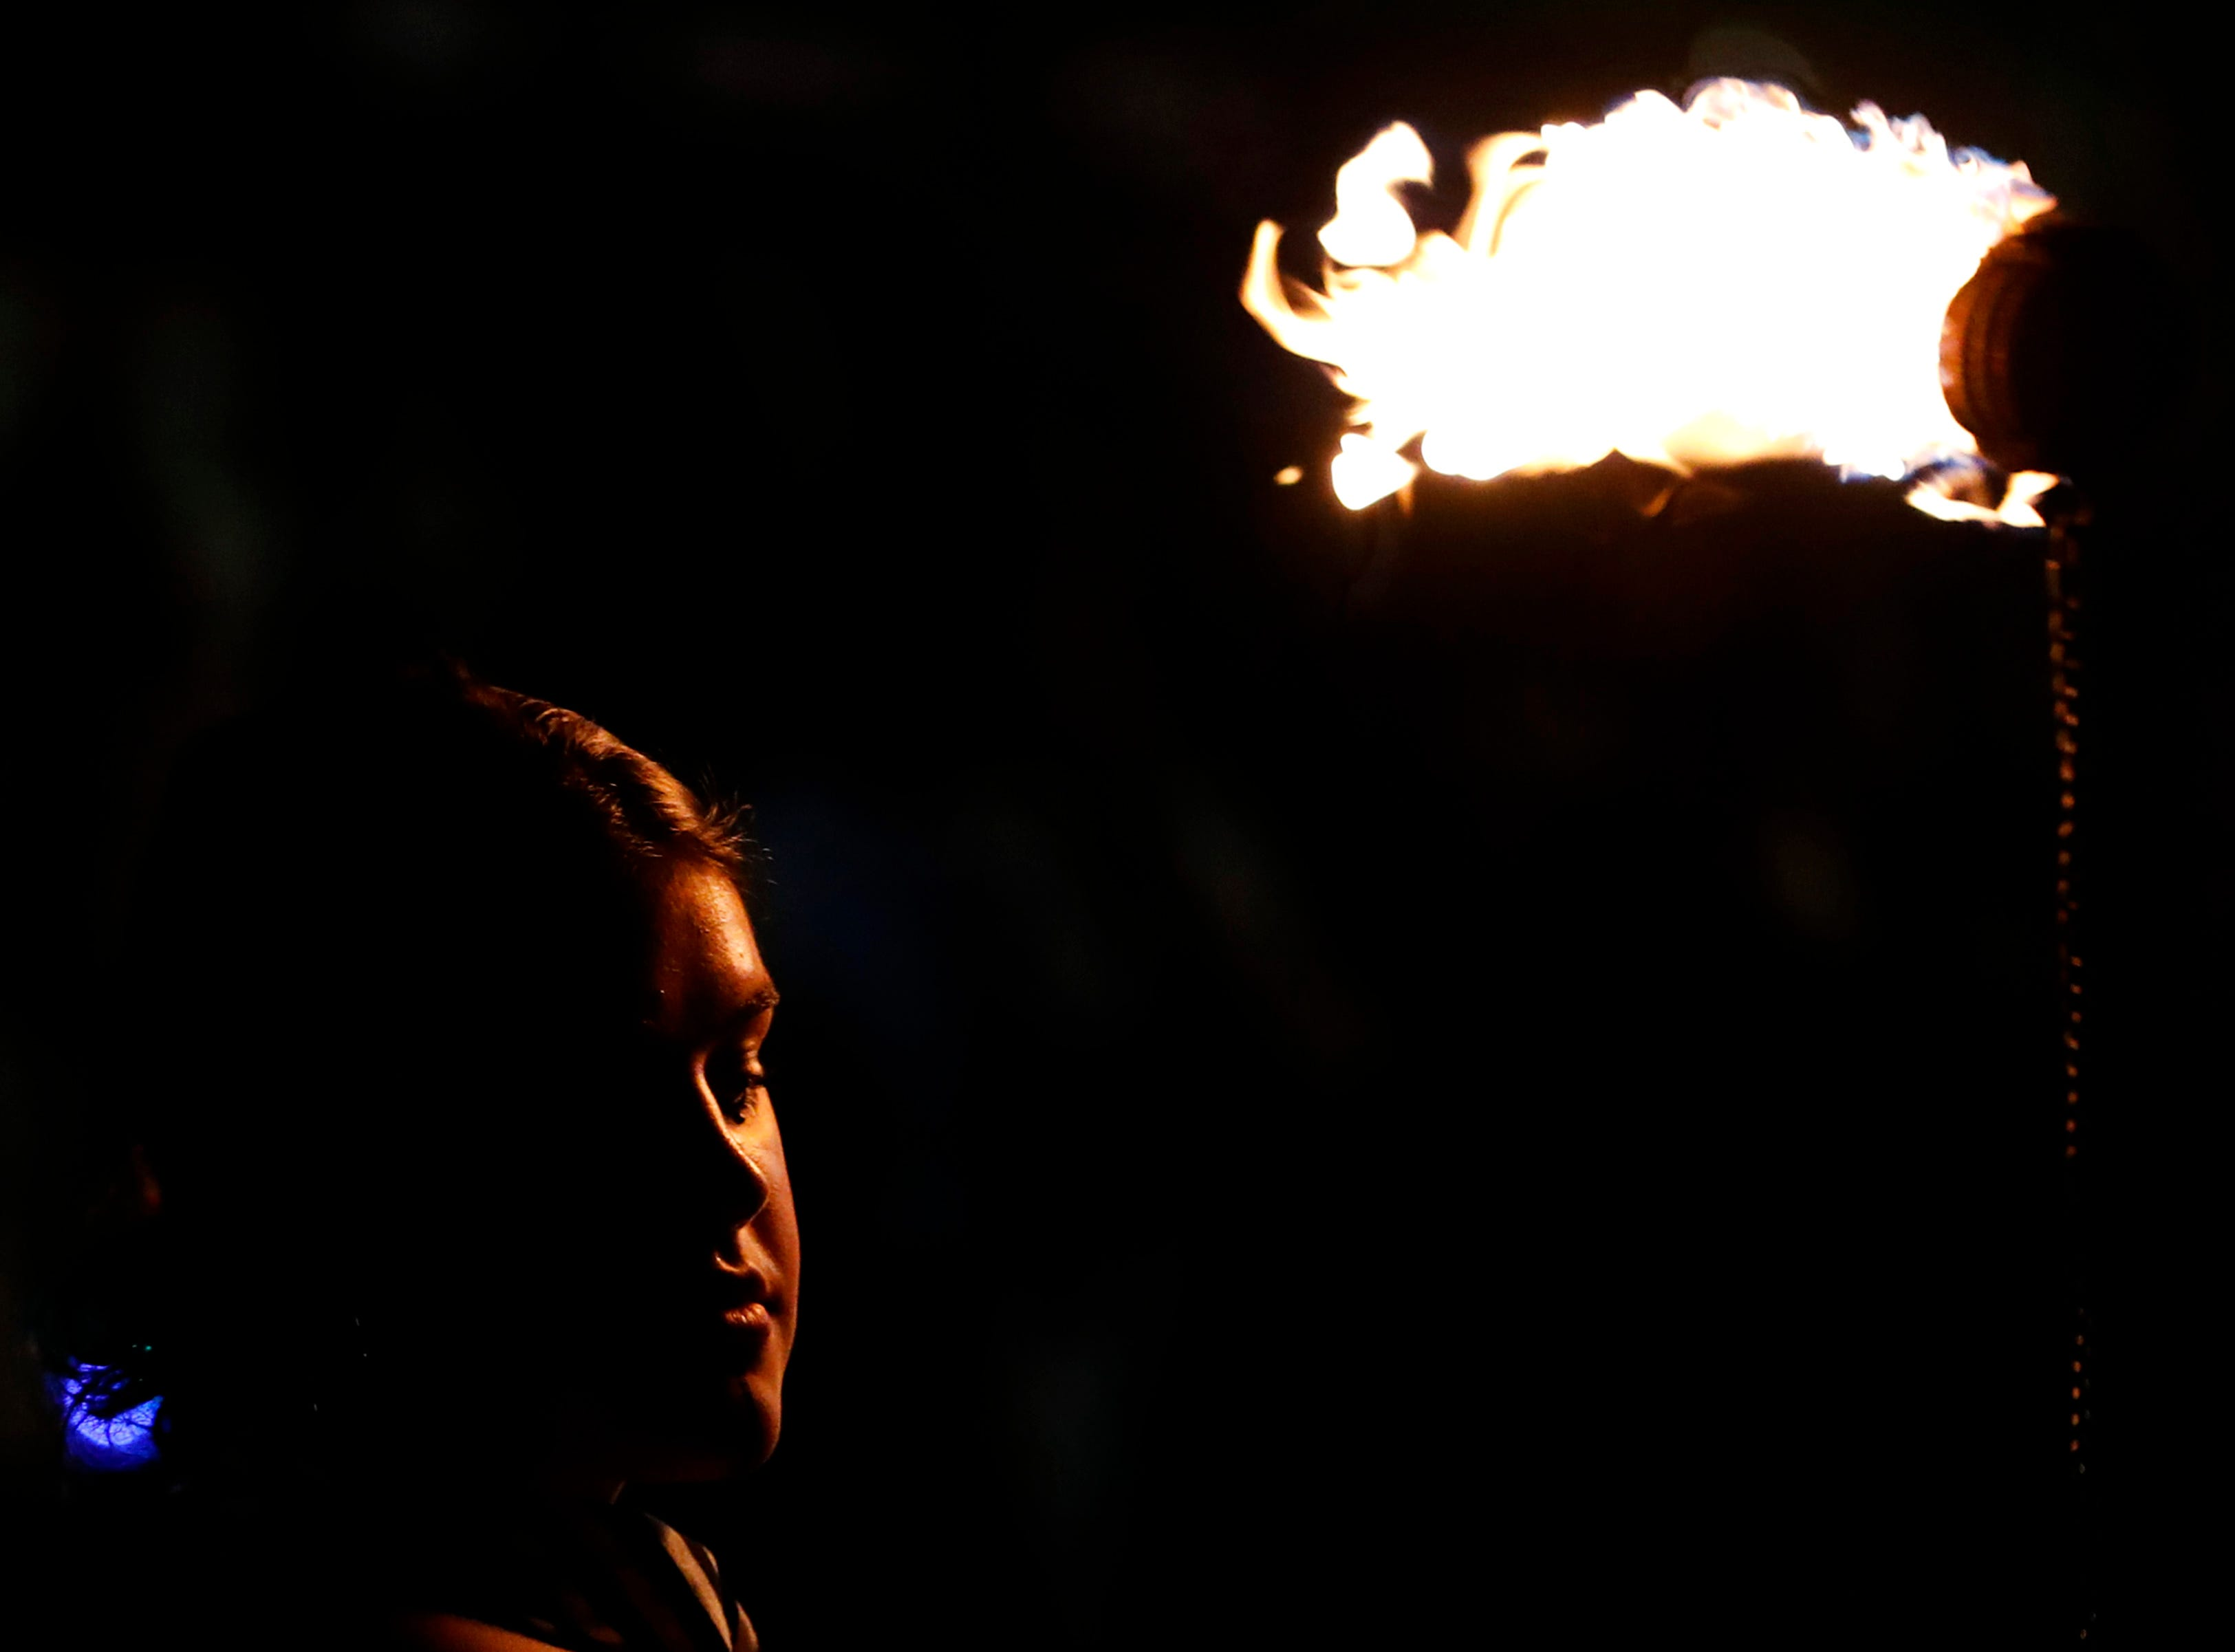 Maggie Pearce, with Fox Valley Fire and Flow Collective, is illuminated while dancing with fire during Bazaar After Dark Wednesday, Sept. 12, 2018, in Menasha, Wis.Danny Damiani/USA TODAY NETWORK-Wisconsin